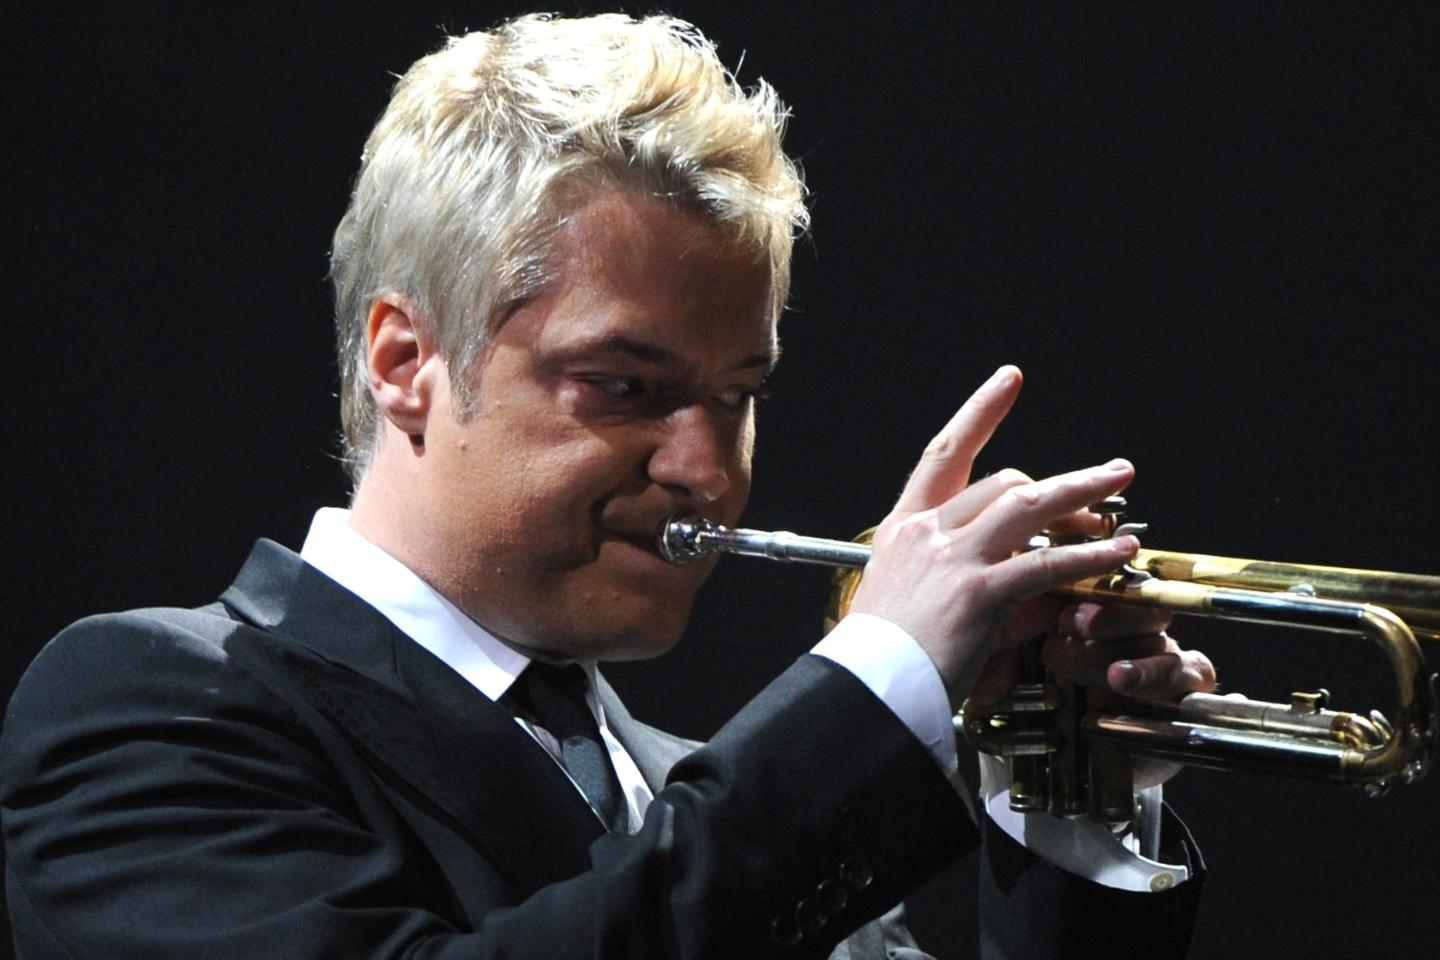 Chris Botti Tour 2020 Chris Botti Tickets | Chris Botti Tour Dates 2020 and Concert